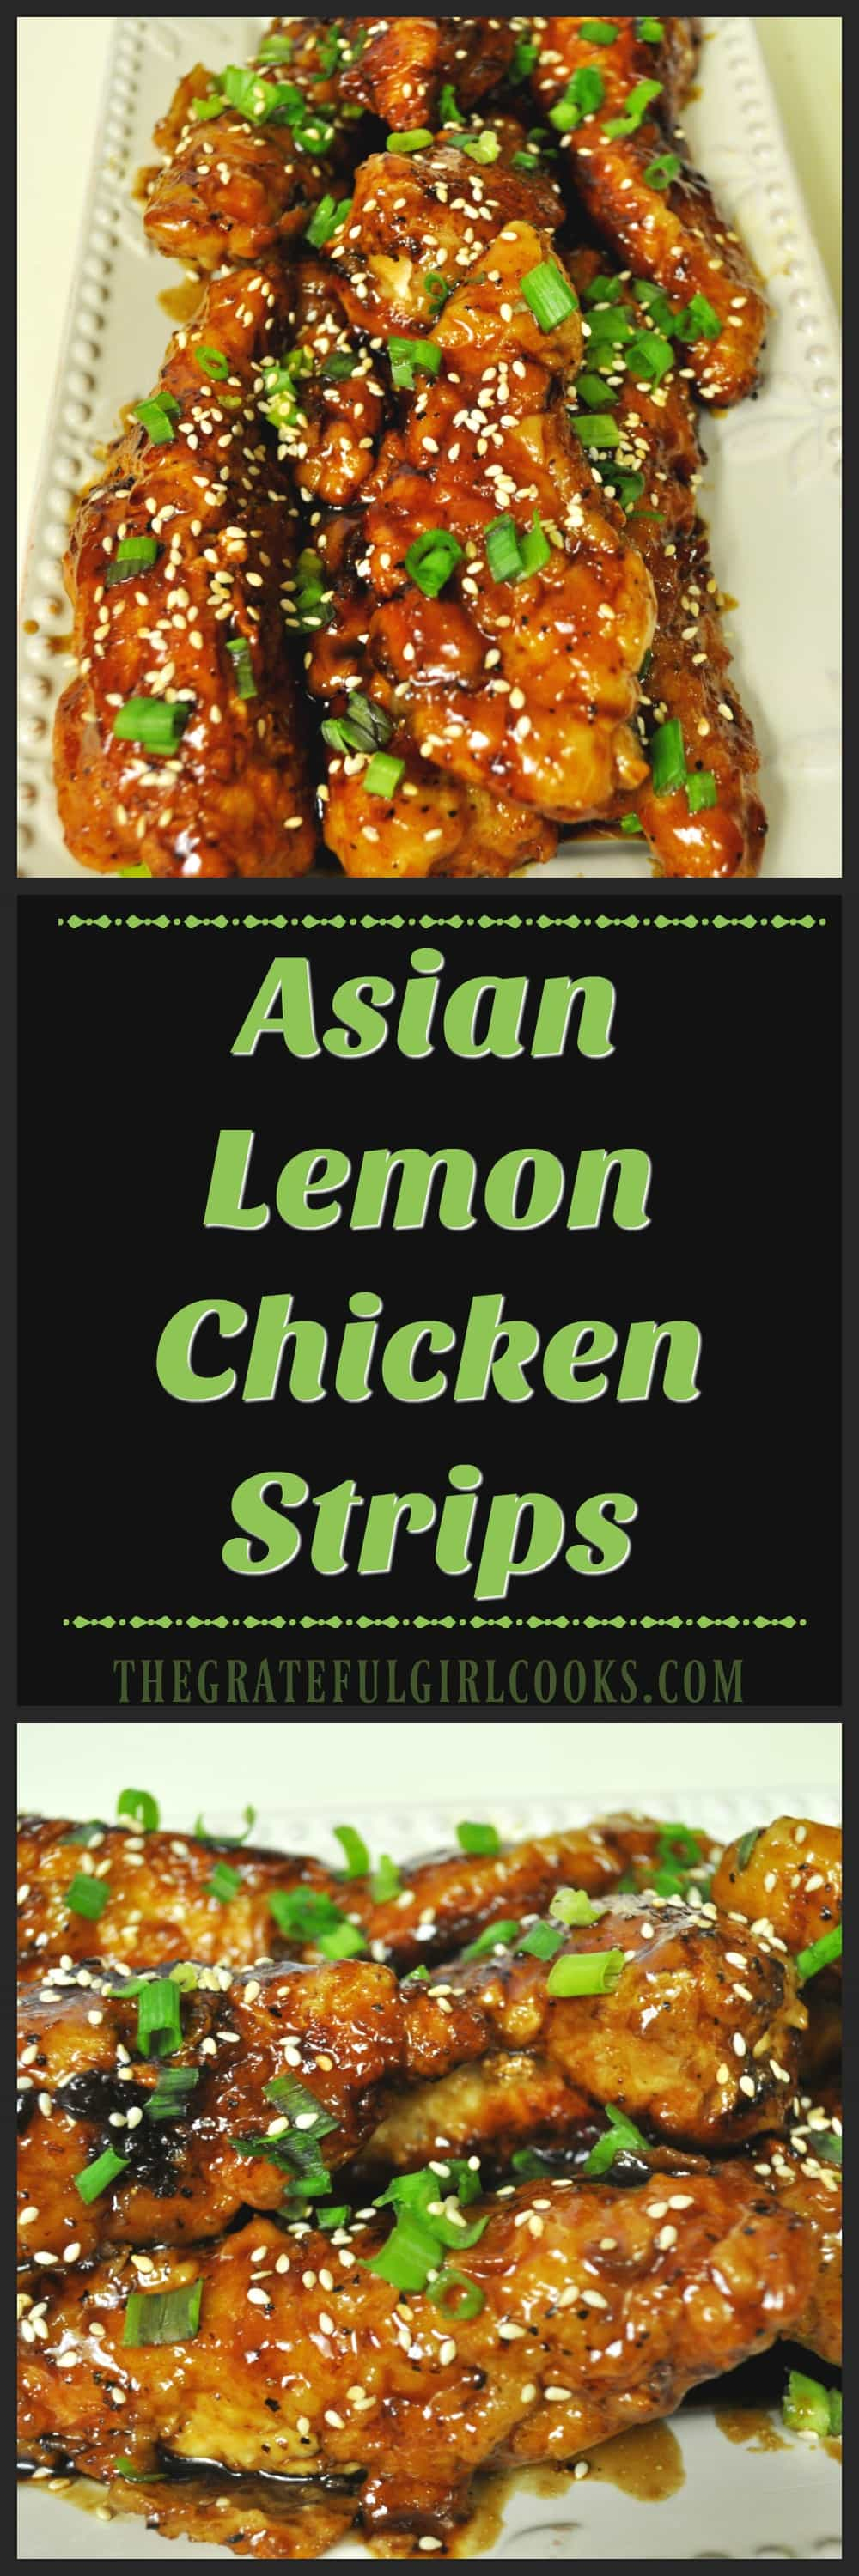 Asian Lemon Chicken Strips / The Grateful Girl Cooks! Crispy chicken breast strips are cooked, then coated in an Asian-inspired, sweet and sticky, lemon glaze in this delicious, restaurant-quality dish!